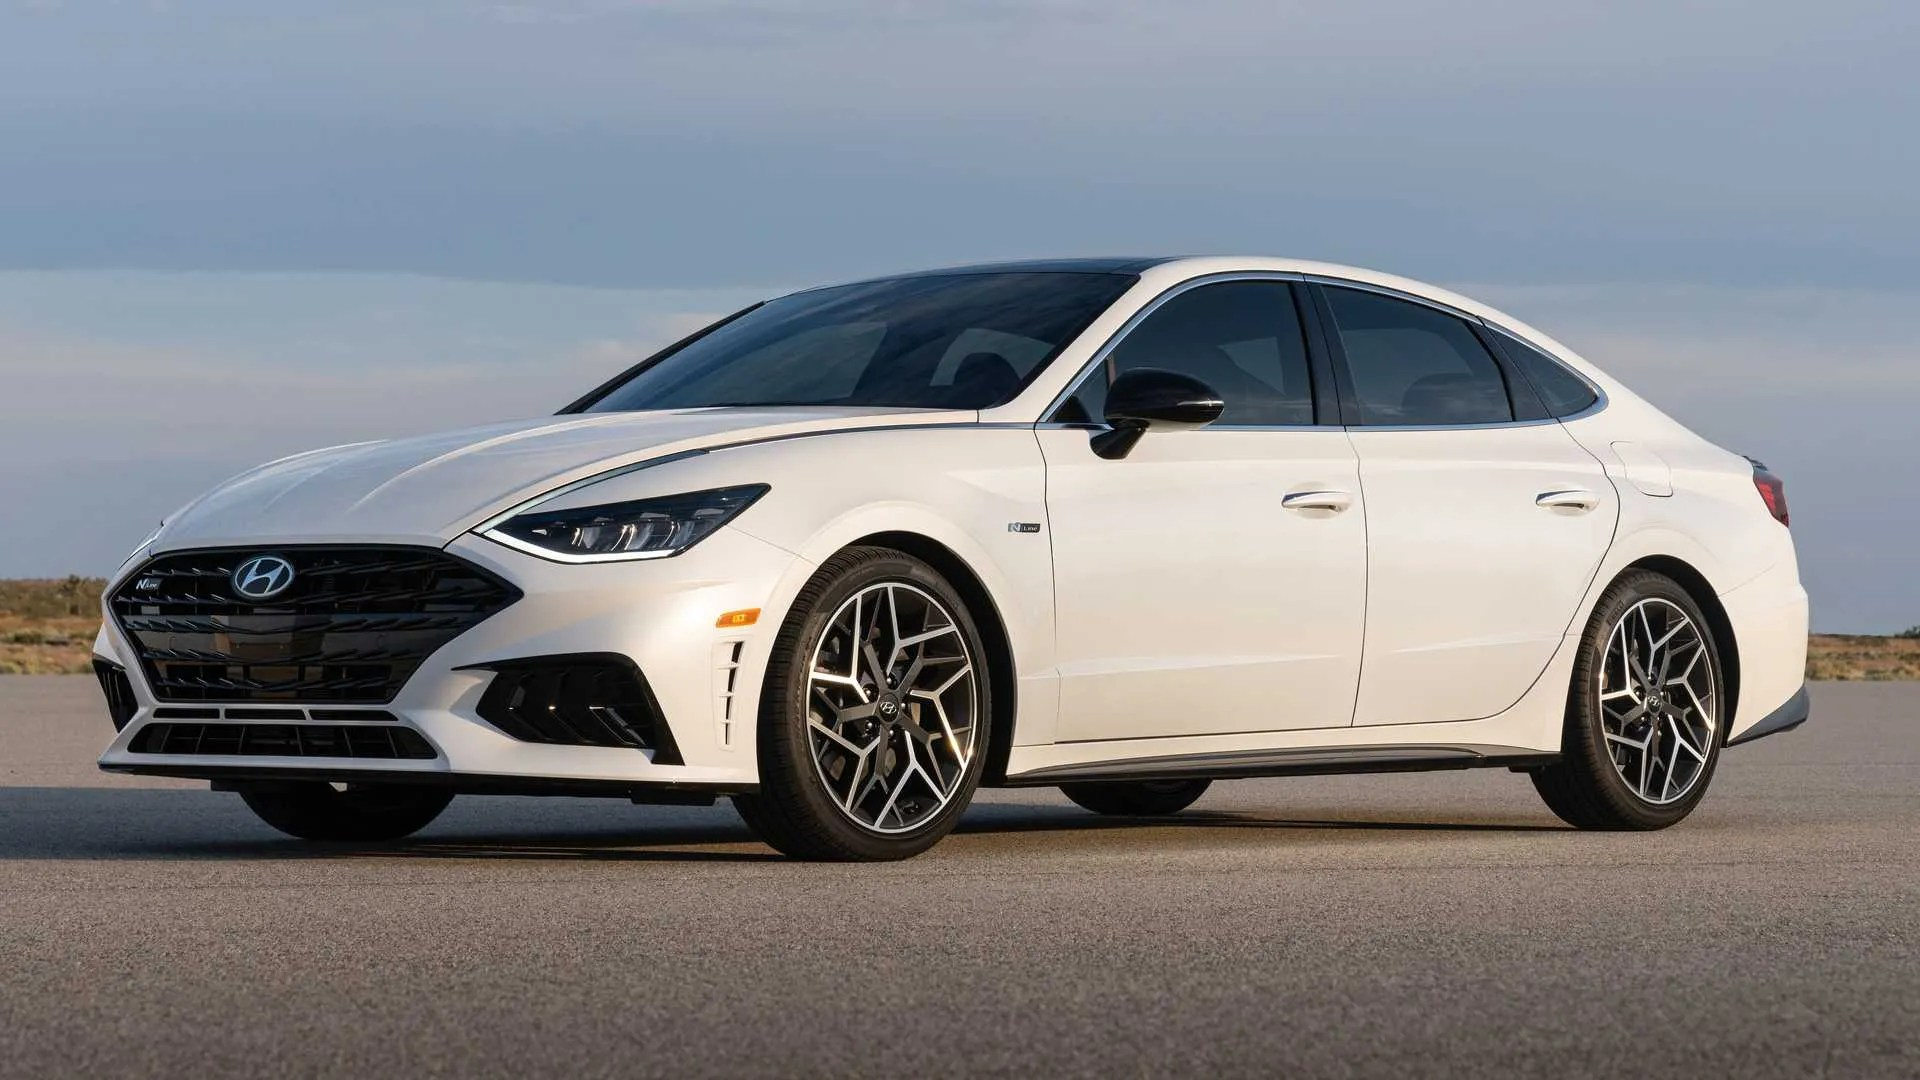 However, it appears possible that at some point the car could be. Hyundai Sonata Could Skip Facelift Get New Design In 2023 Report